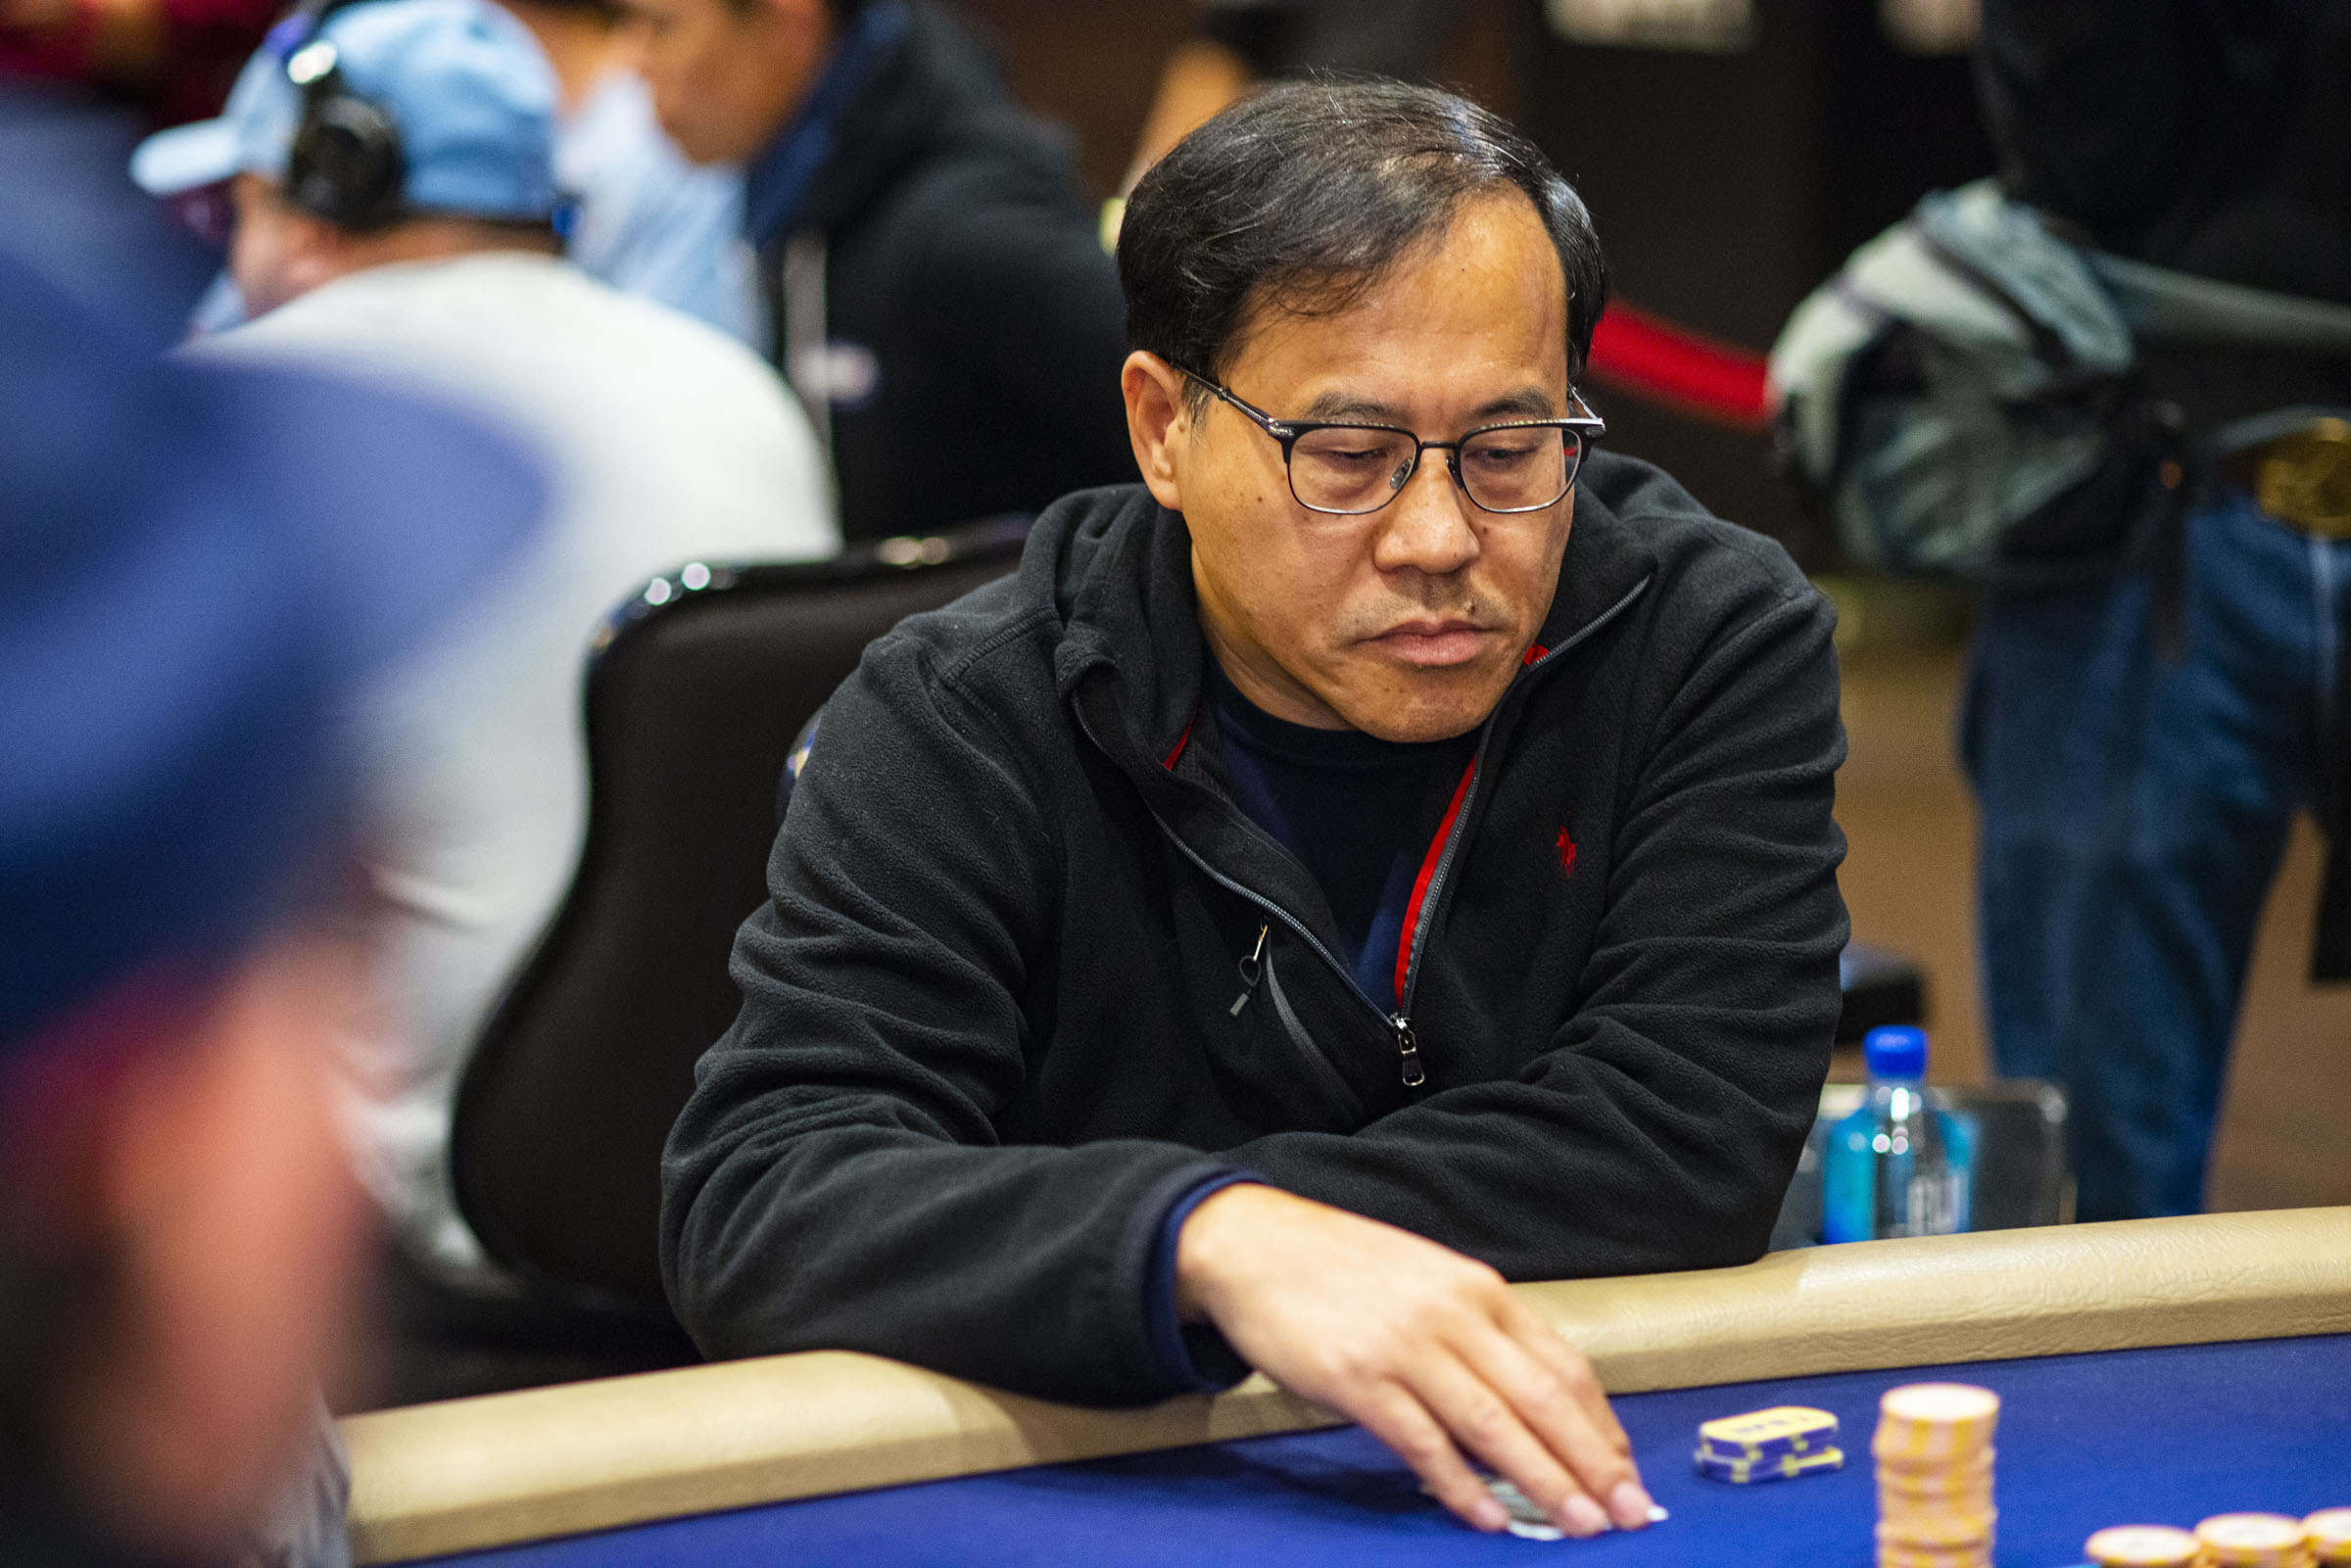 2020 World Poker Tour Odds, betting predictions, betting tips, bovada, GamingZion, online gambling sites in the us, sports bets, sportsbooks, online casino, online poker, WPT, World Poker Tour, Luxor Las Vegas, Qing Liu, Chance Kornuth